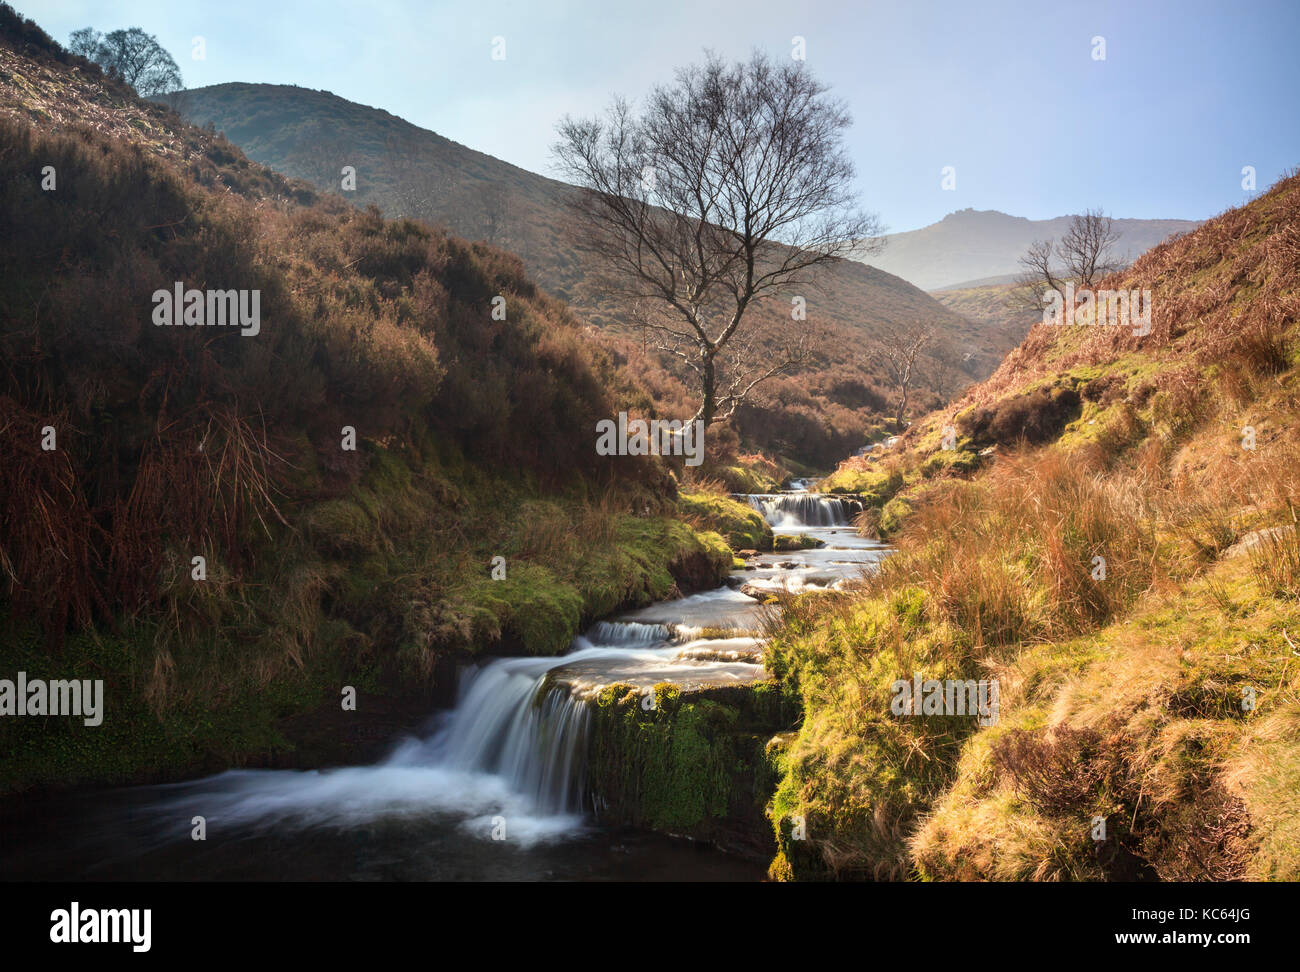 Fairbrook in the Peak District National Park with Kinder Scout in the distance. - Stock Image